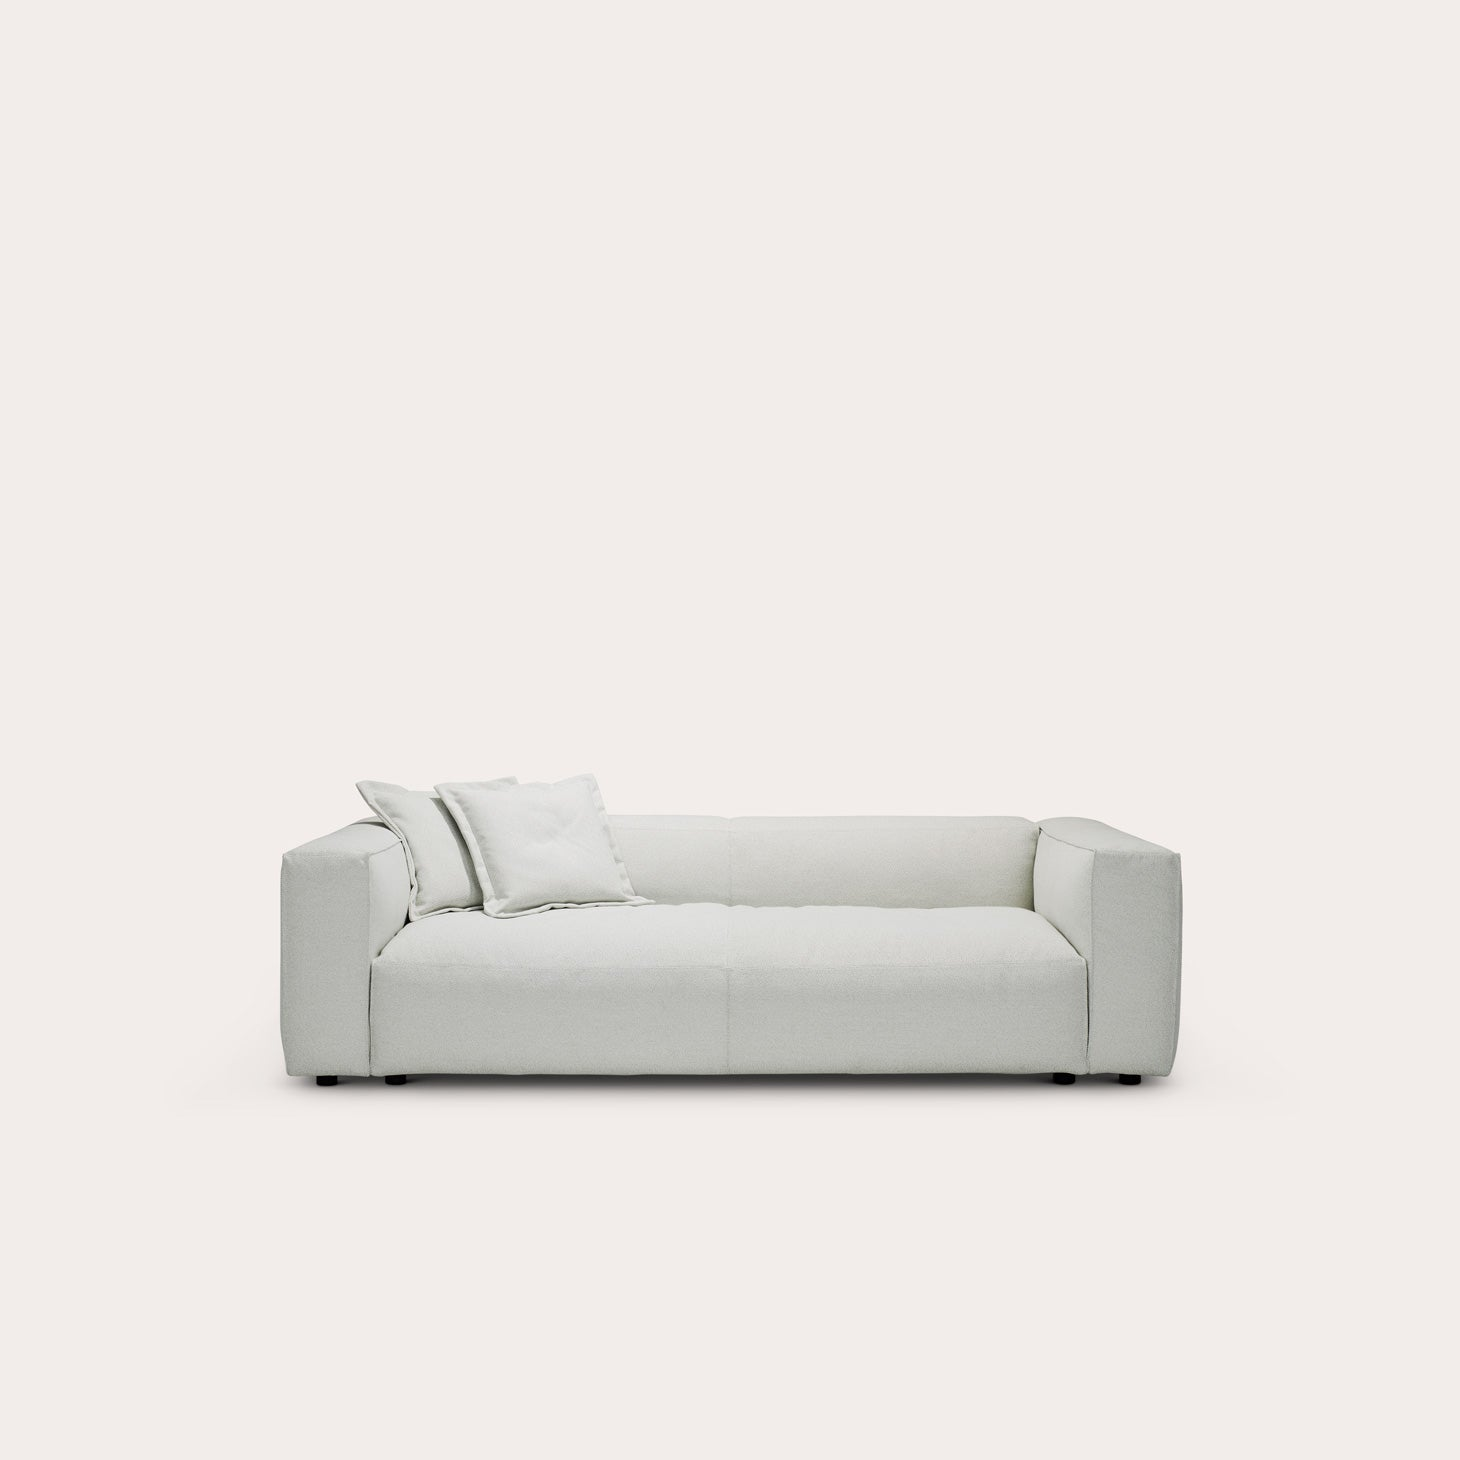 Southampton Sofa Seating Jan te Lintelo Designer Furniture Sku: 247-240-10381